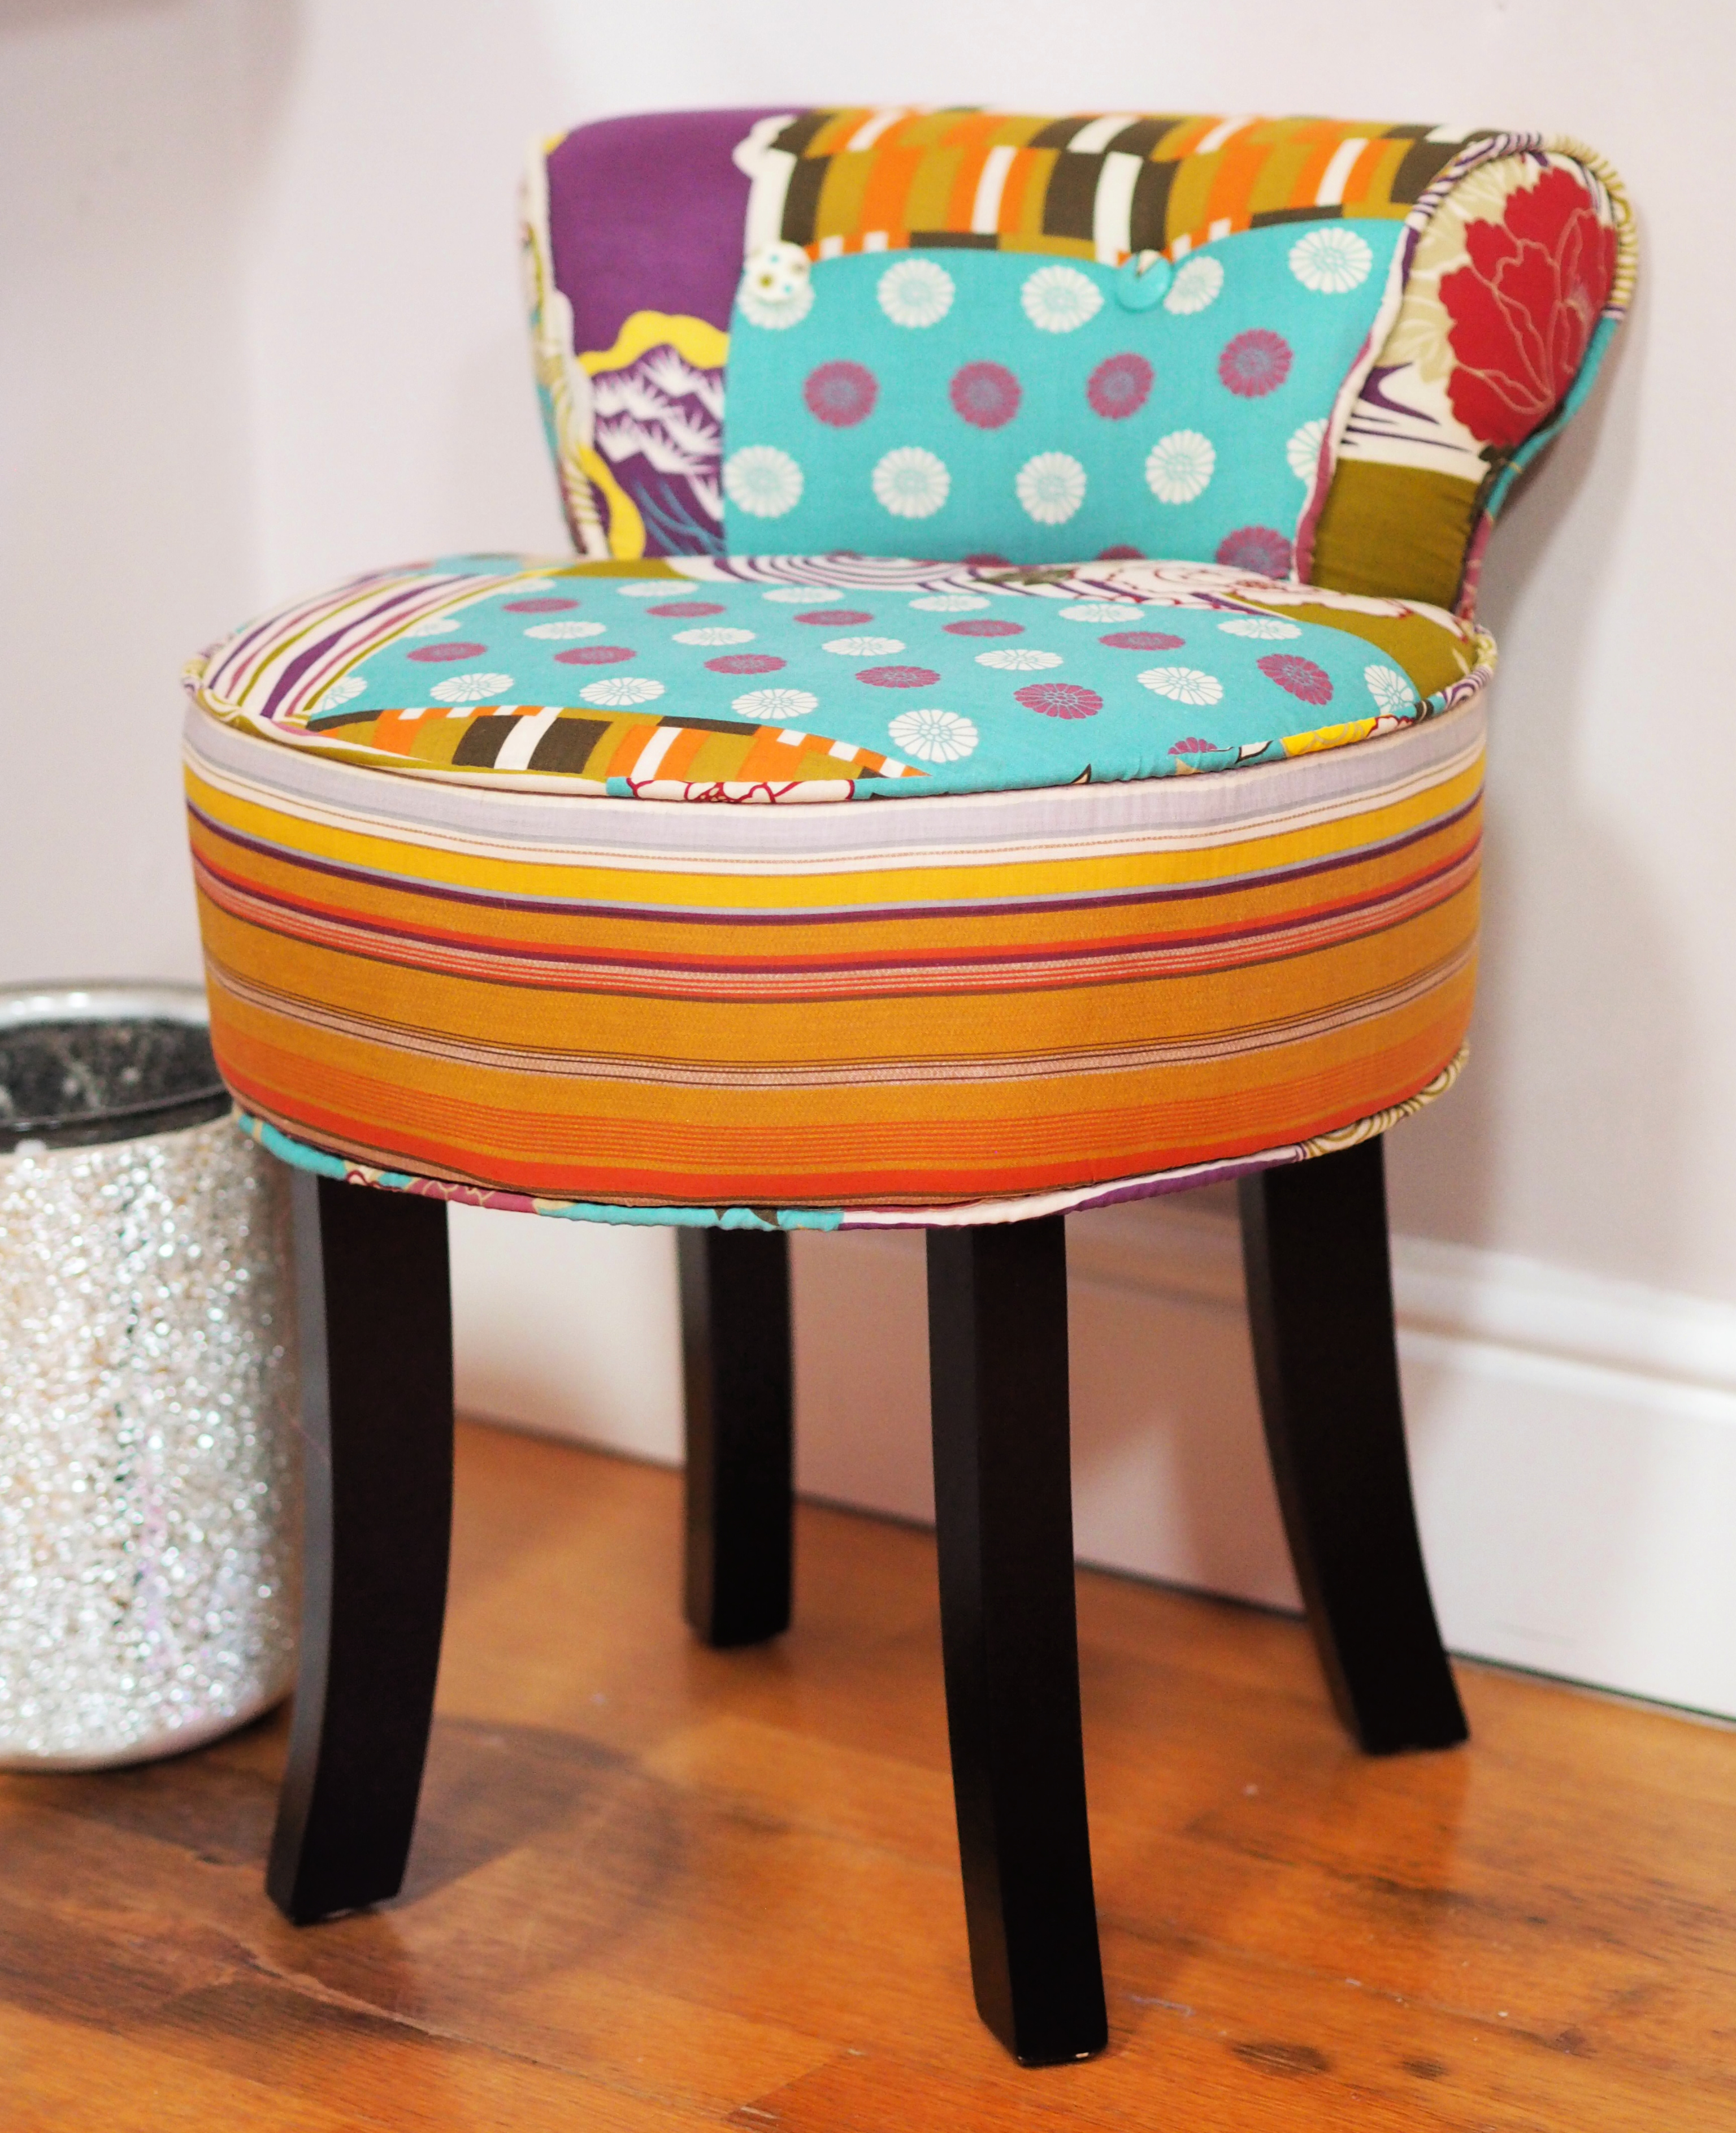 Pleasant Organising Those Finishing Touches With Wayfair Lauras Ncnpc Chair Design For Home Ncnpcorg